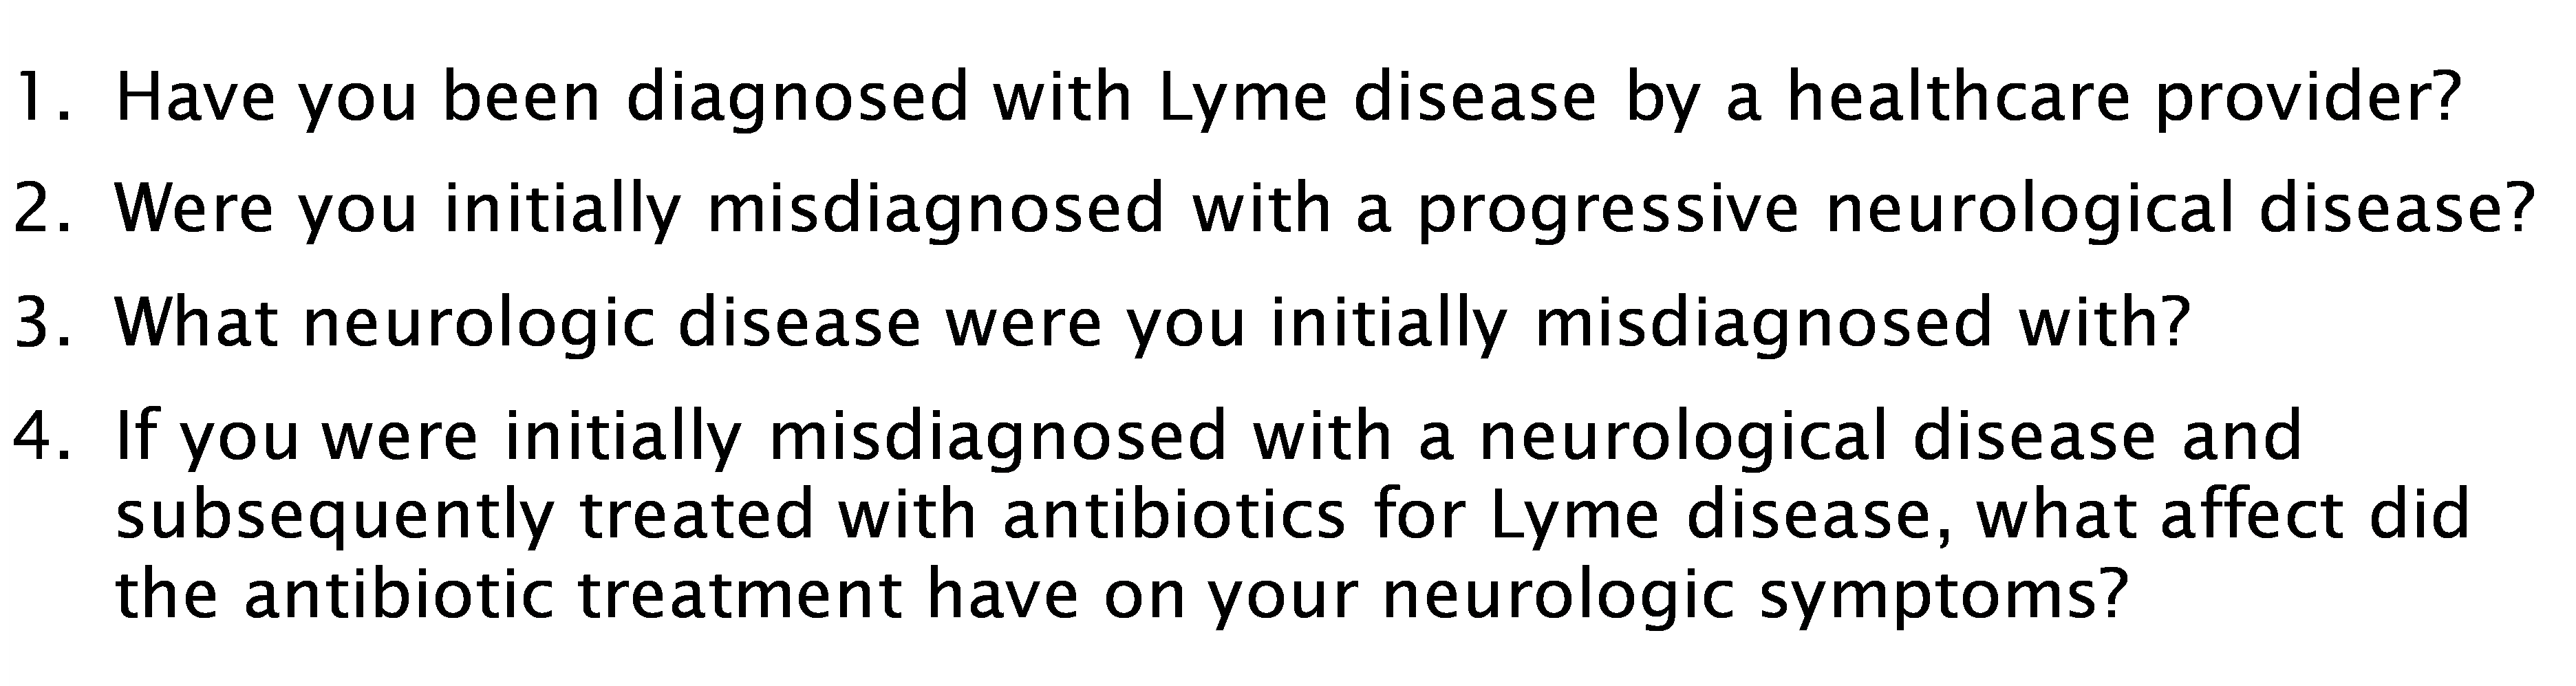 Neuro Lyme follow up survey questions 1